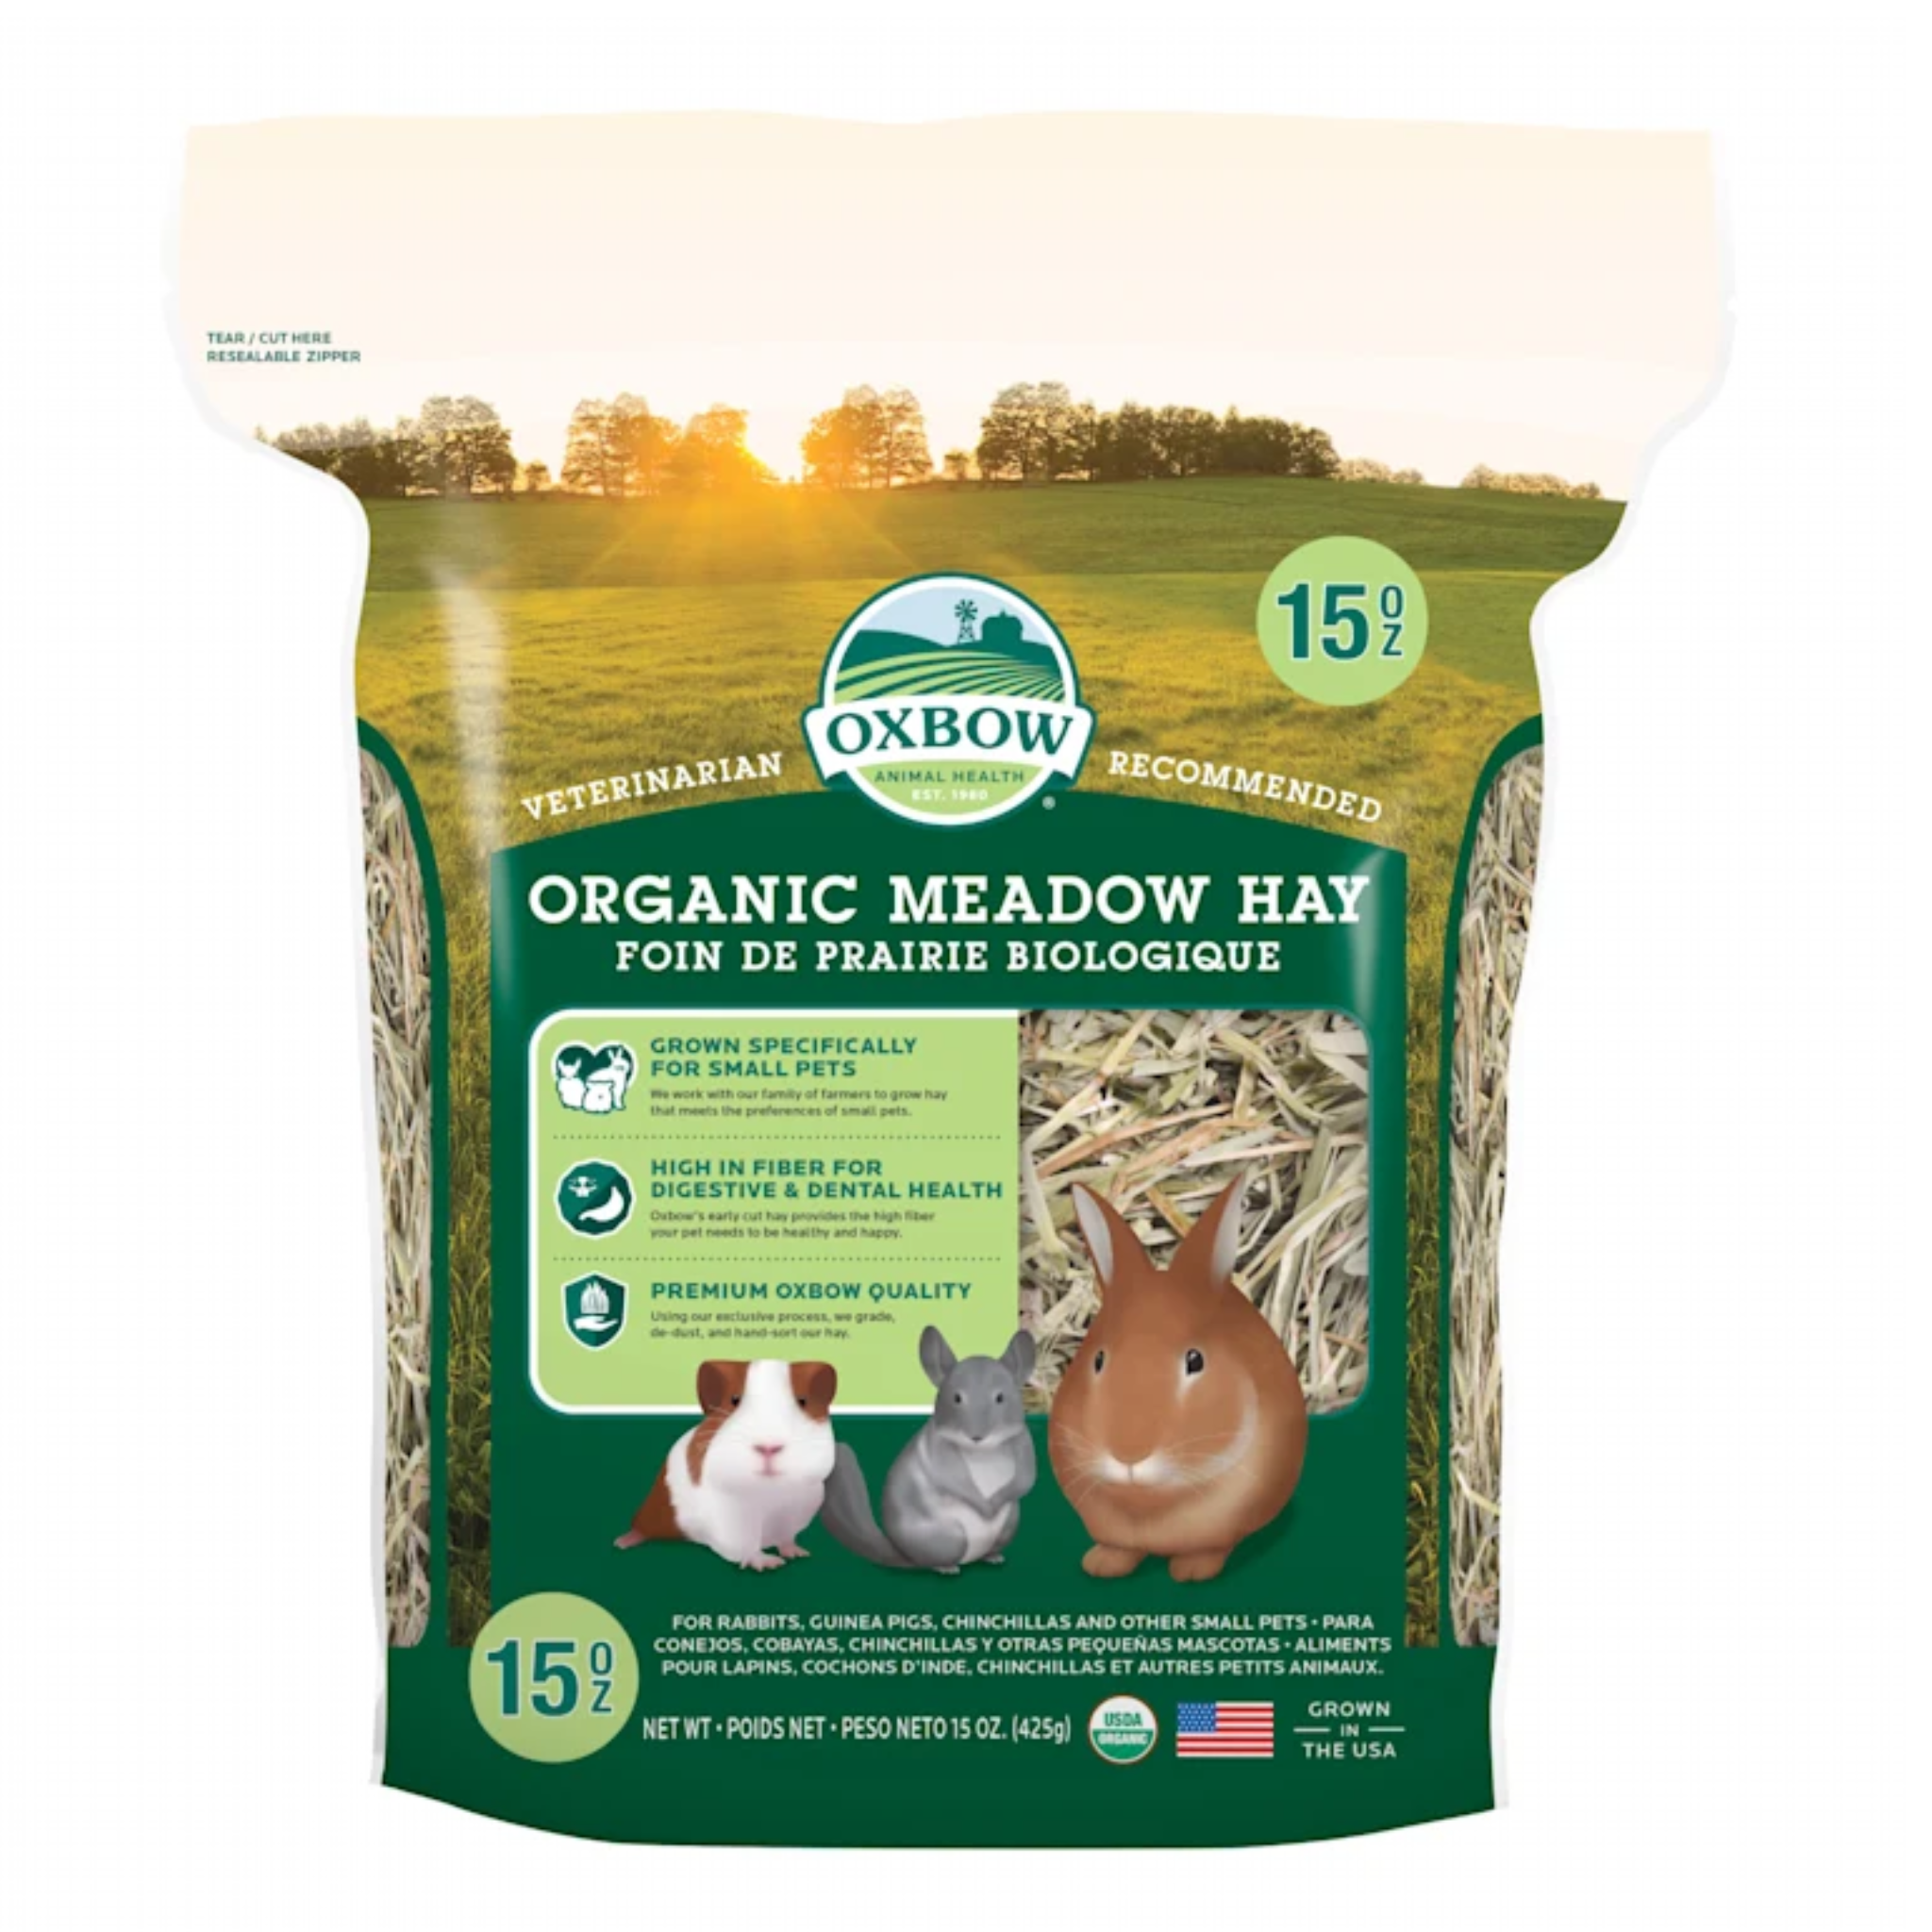 OXBOW PET PRODUCTS Oxbow Organic Meadow Hay